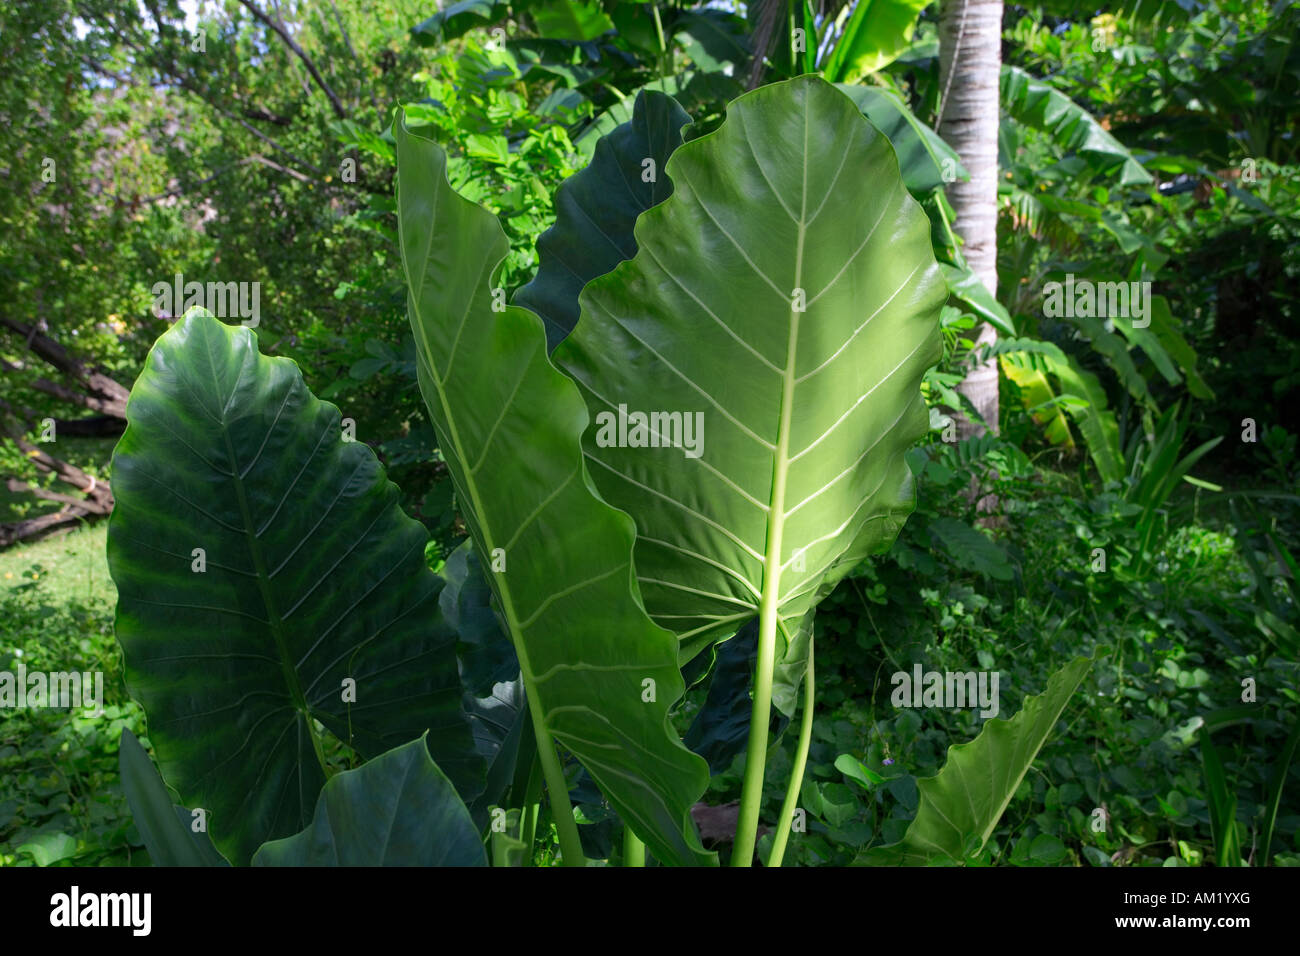 jungle leaves stockfotos jungle leaves bilder alamy. Black Bedroom Furniture Sets. Home Design Ideas